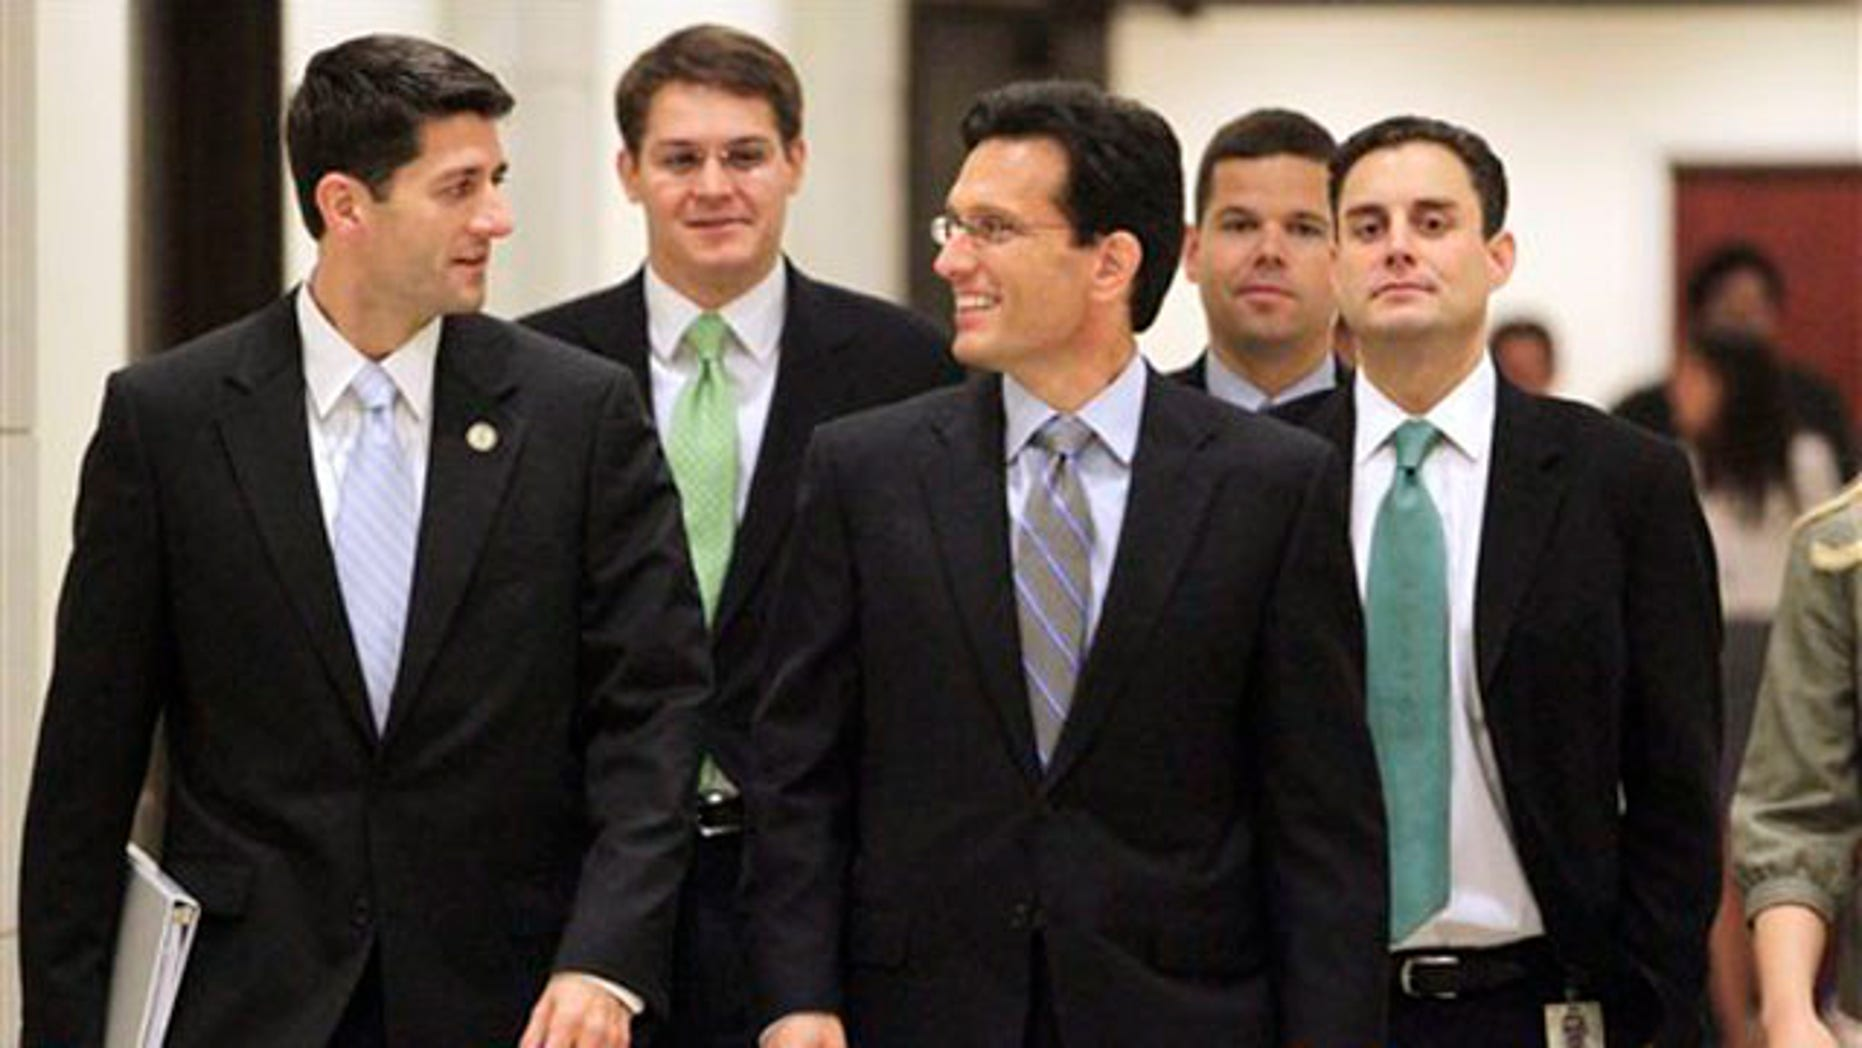 House Budget Committee Chairman Paul Ryan, left, and House Majority Leader Eric Cantor, center, and others walk to a news conference on Capitol Hill in Washington Aug. 1.